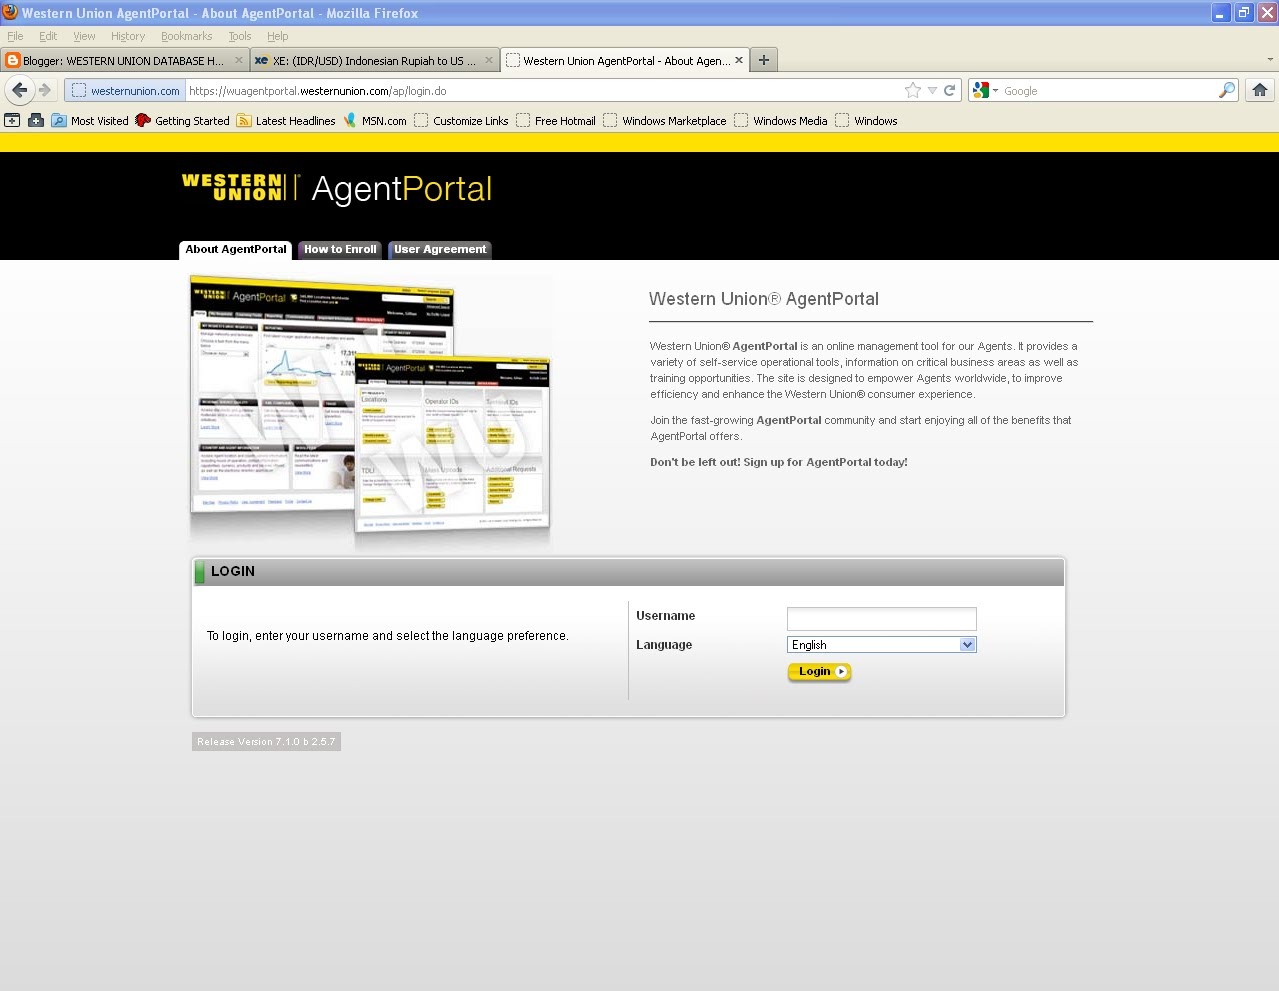 WESTERN UNION HACKING TOOLS INTRODUCING WESTERN UNION AGENT